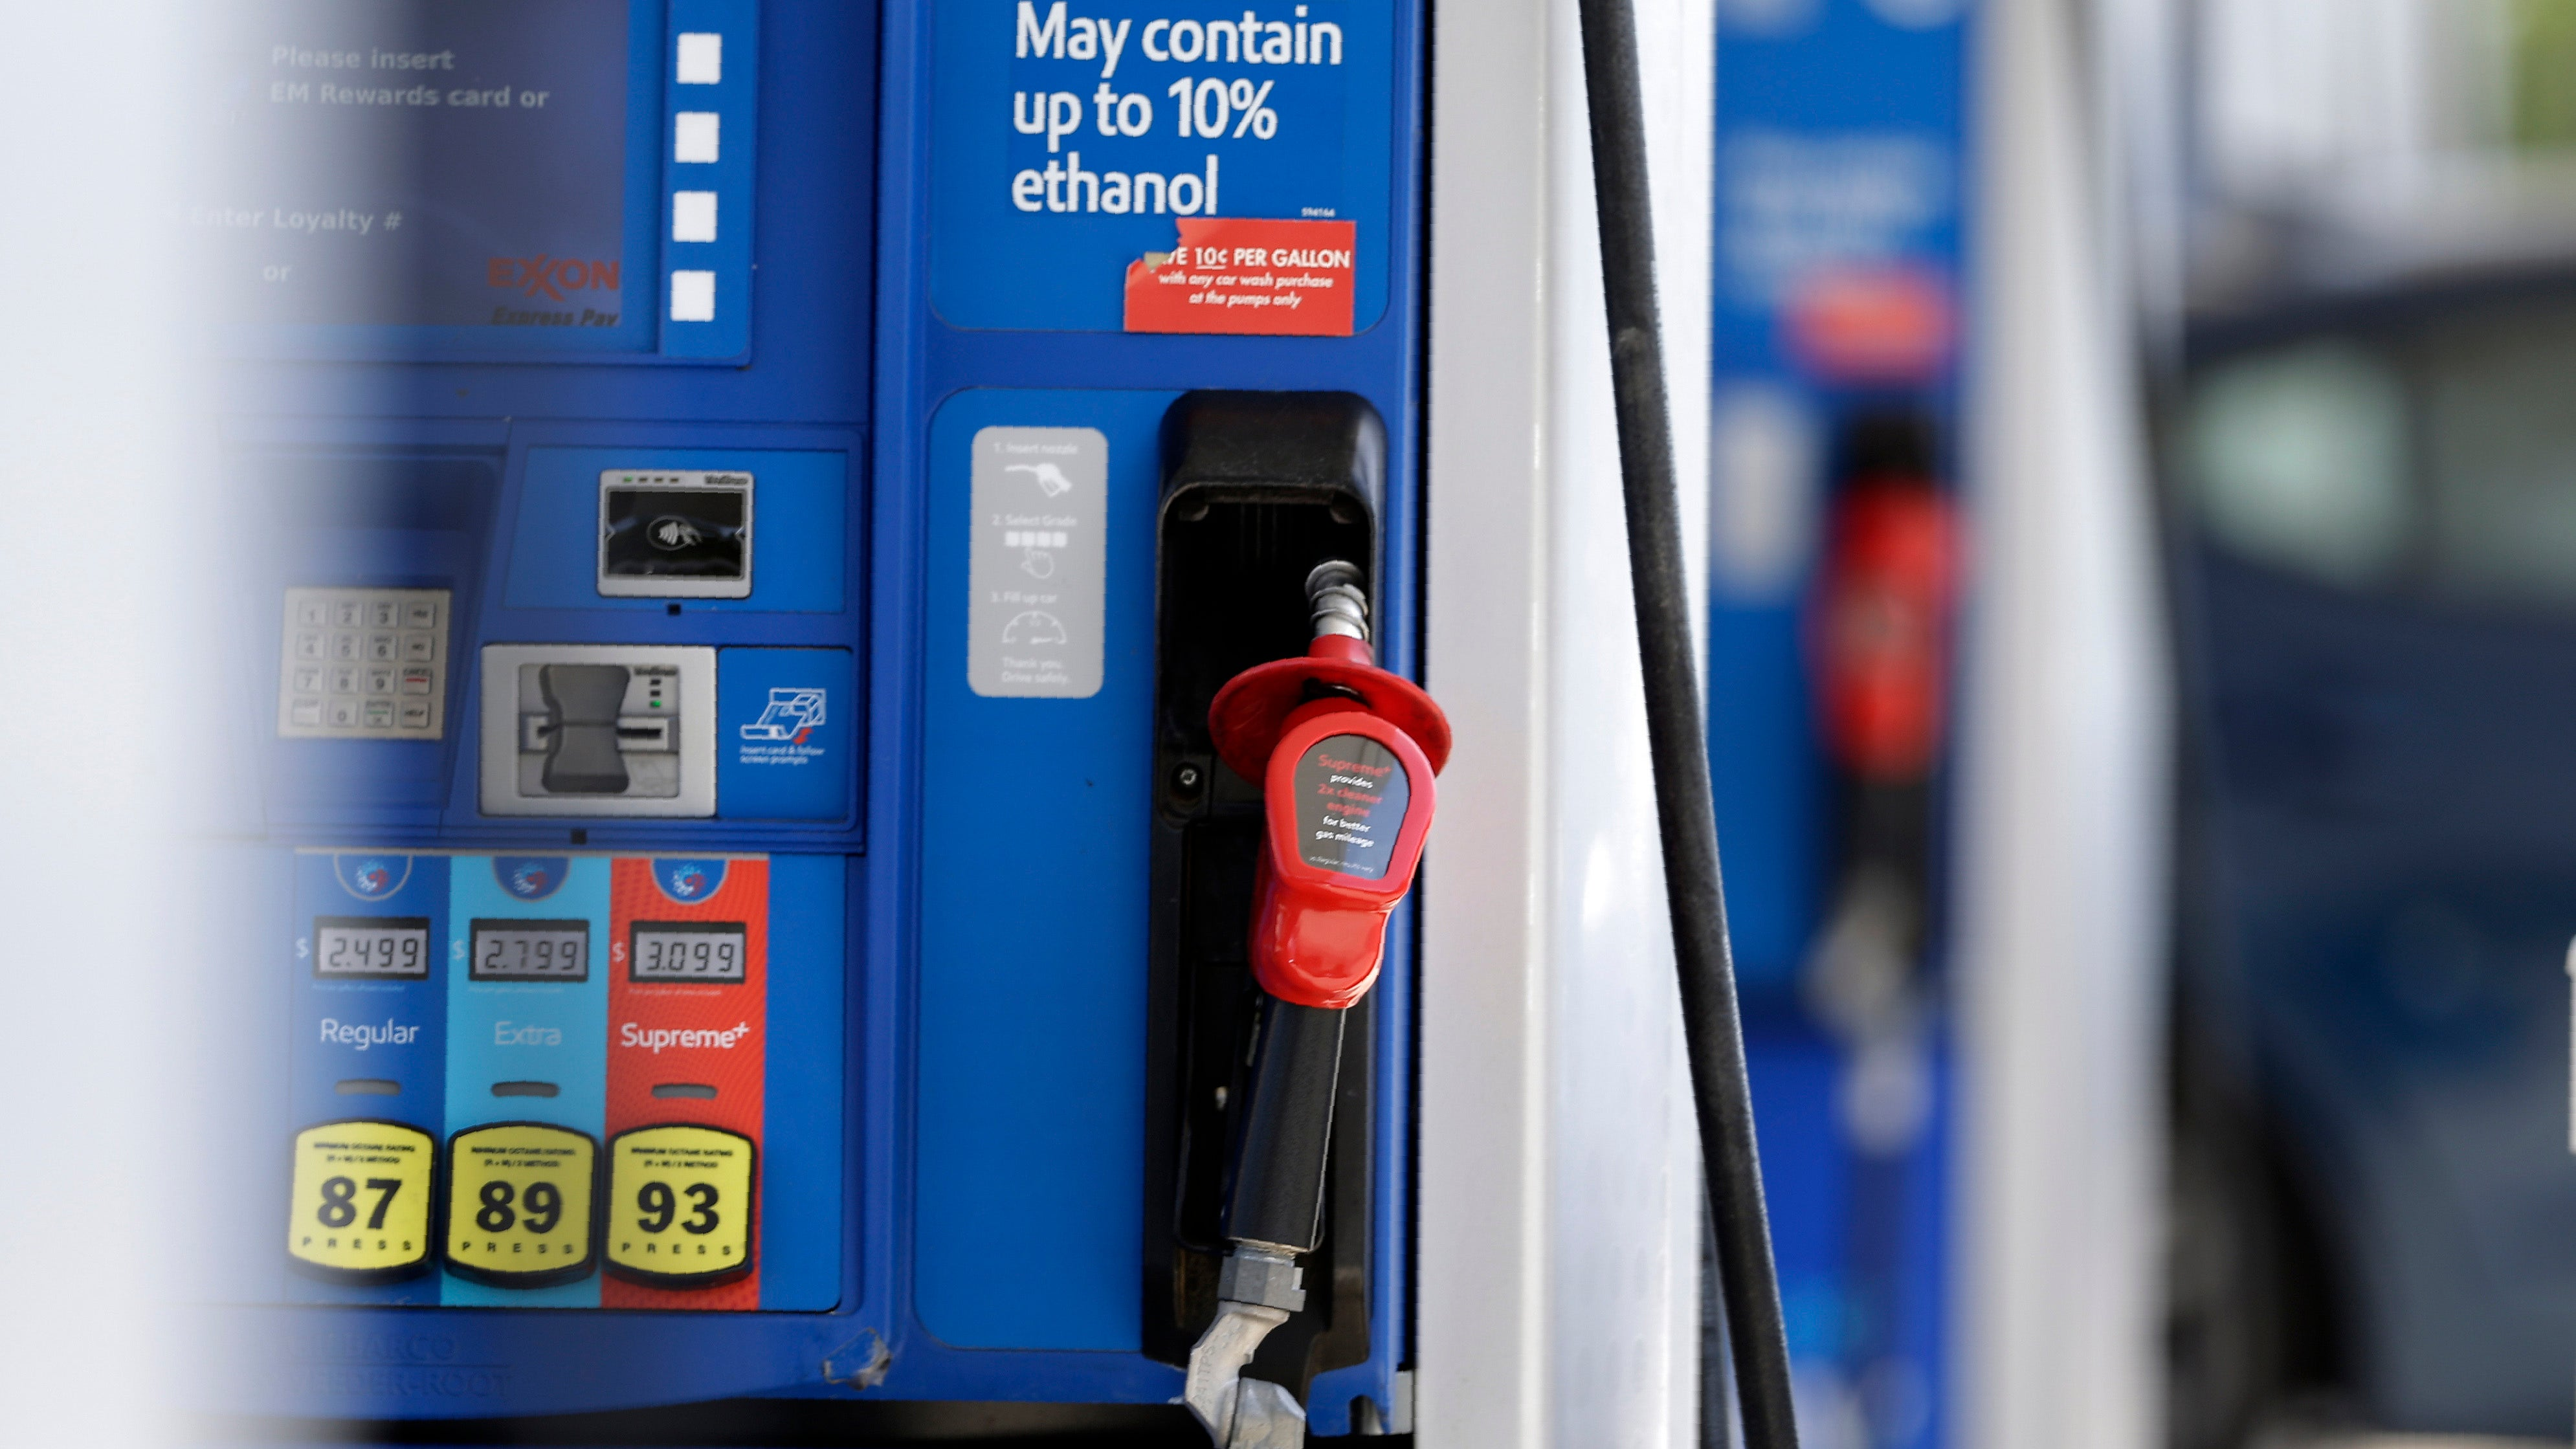 Trump administration wants biofuels to be 30% of transportation fuels by 2050